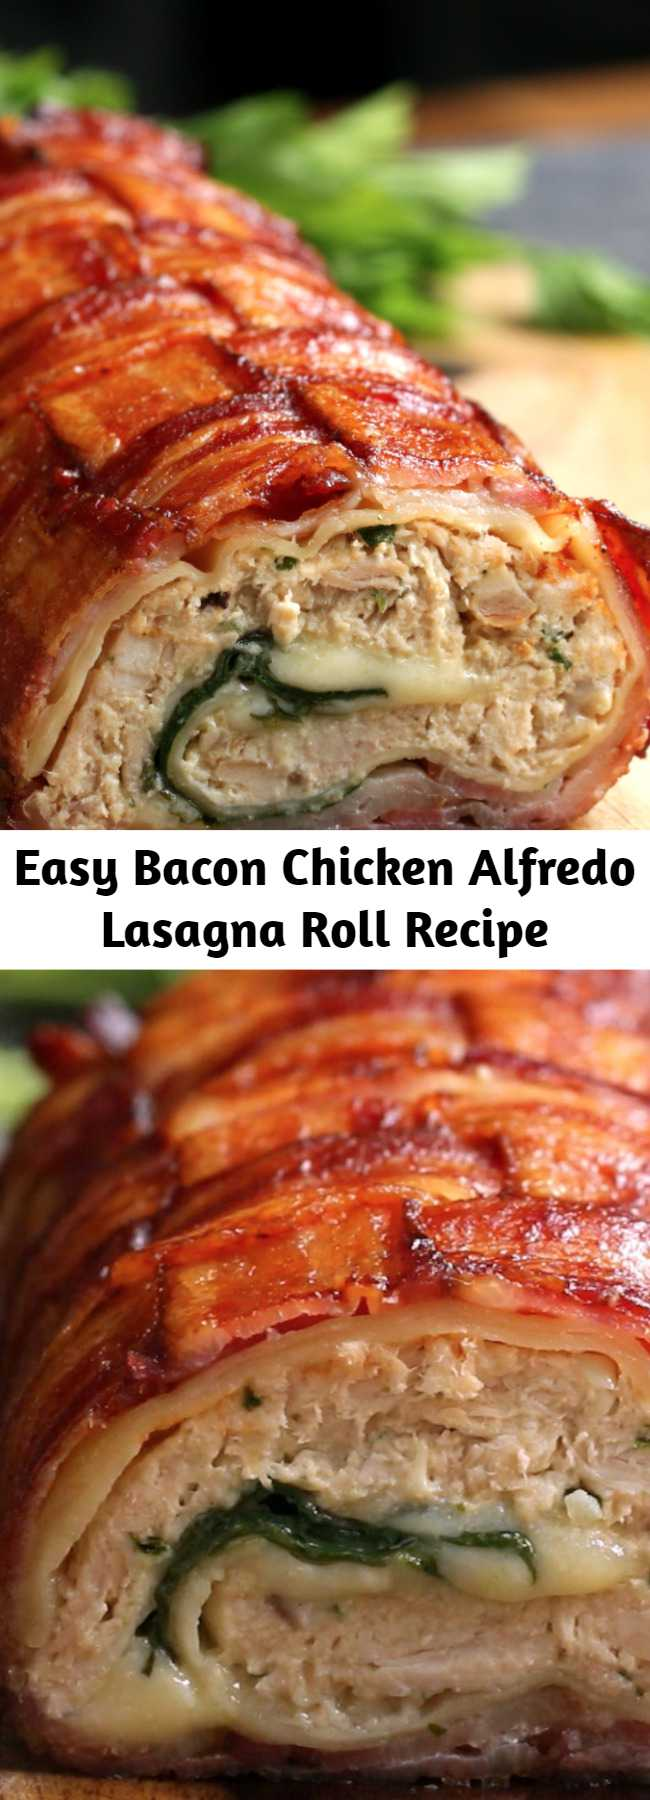 Easy Bacon Chicken Alfredo Lasagna Roll Recipe - Family fav added to weekly suppers!!! Incredibly easy and flavorful! Can almost knock out two dinners with the rotisserie chicken... use half for this roll and the other half for chicken salad, for the next days lunch.